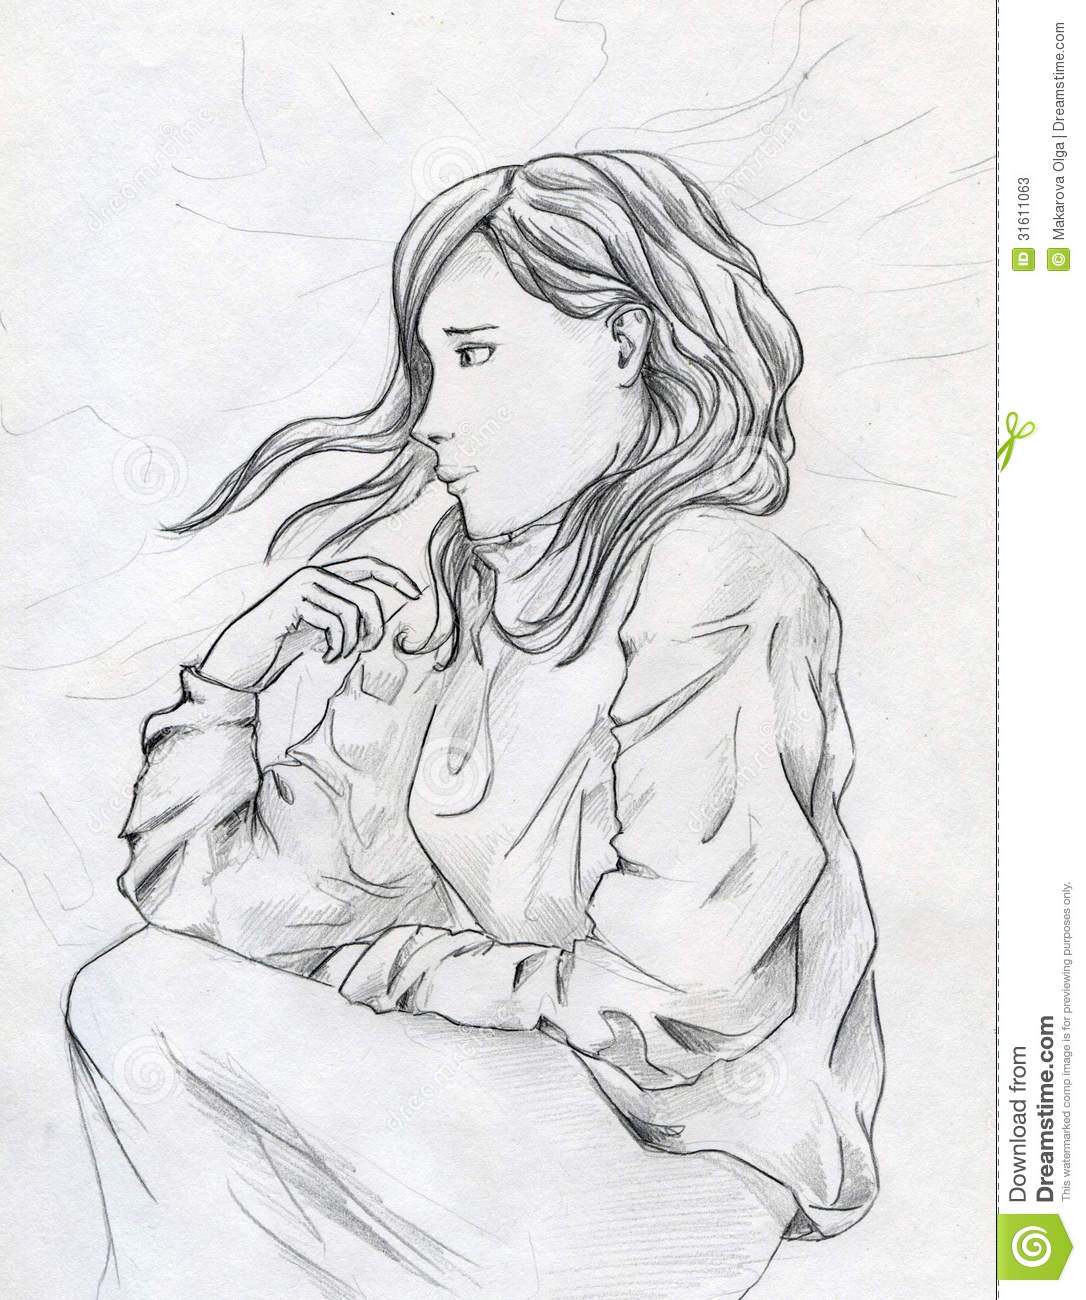 Young girl thinking of something sad while laying in the bed hand drawn pencil sketch